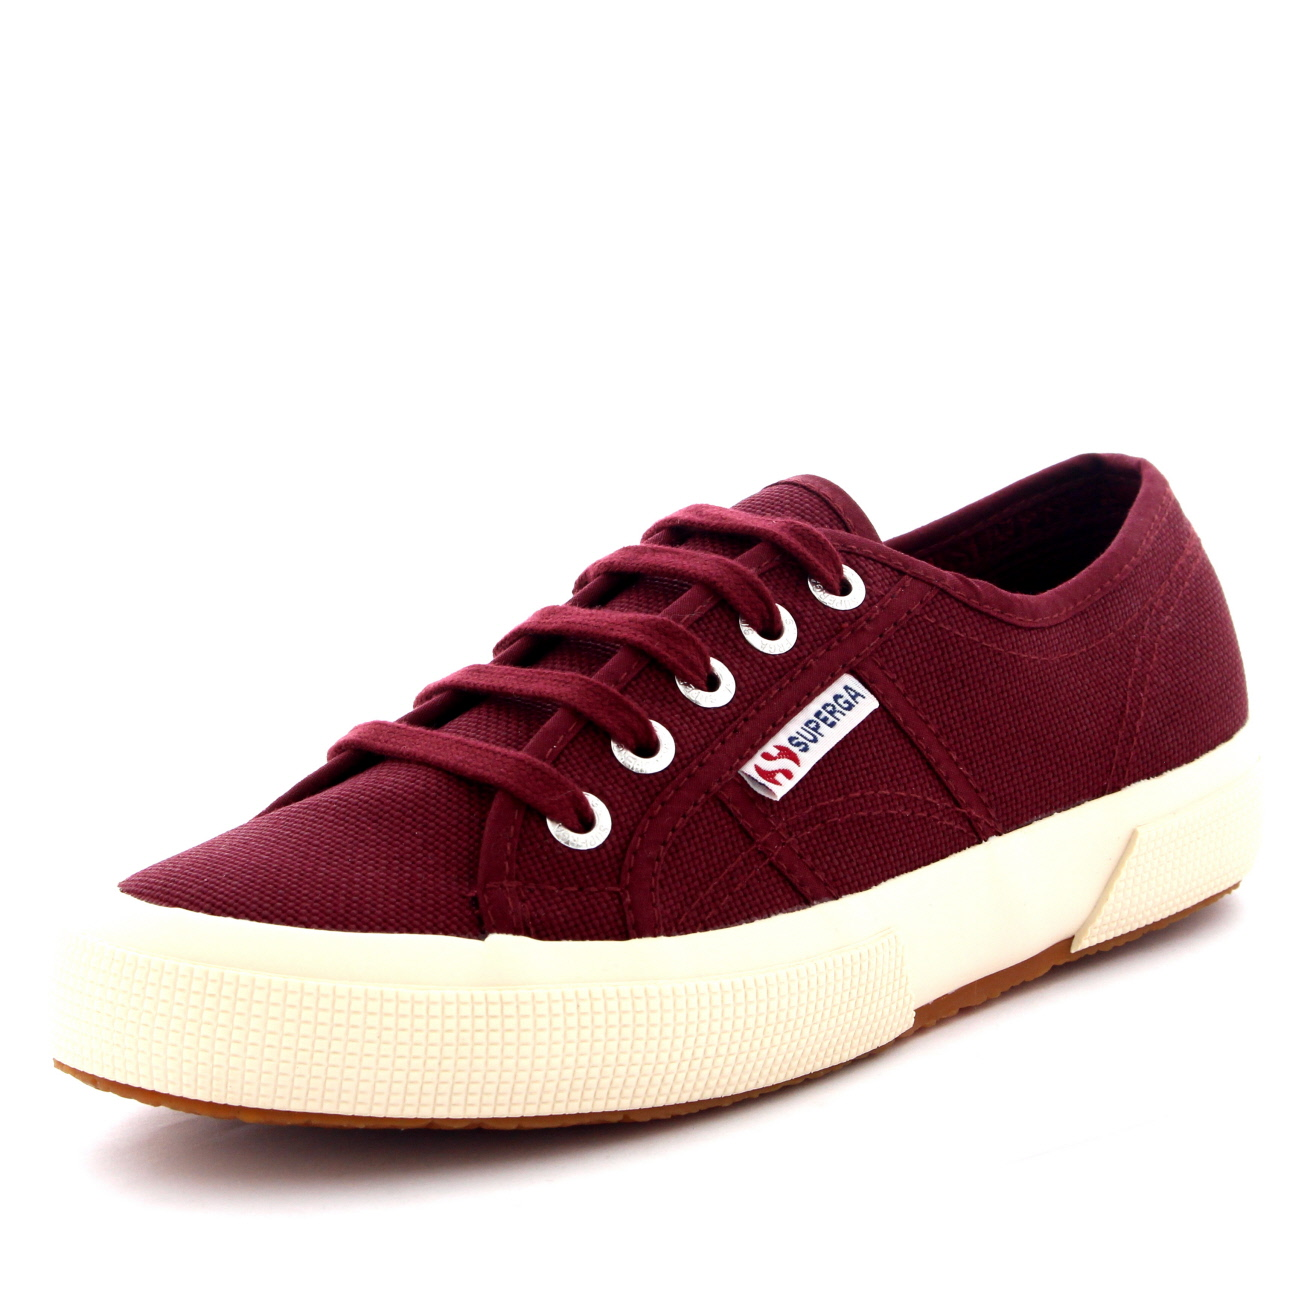 Damenschuhe Superga 2750 Cotu Classic Niedrig Top US Lace Up Plimsolls Sneakers US Top 5.-11.5 0e7bde